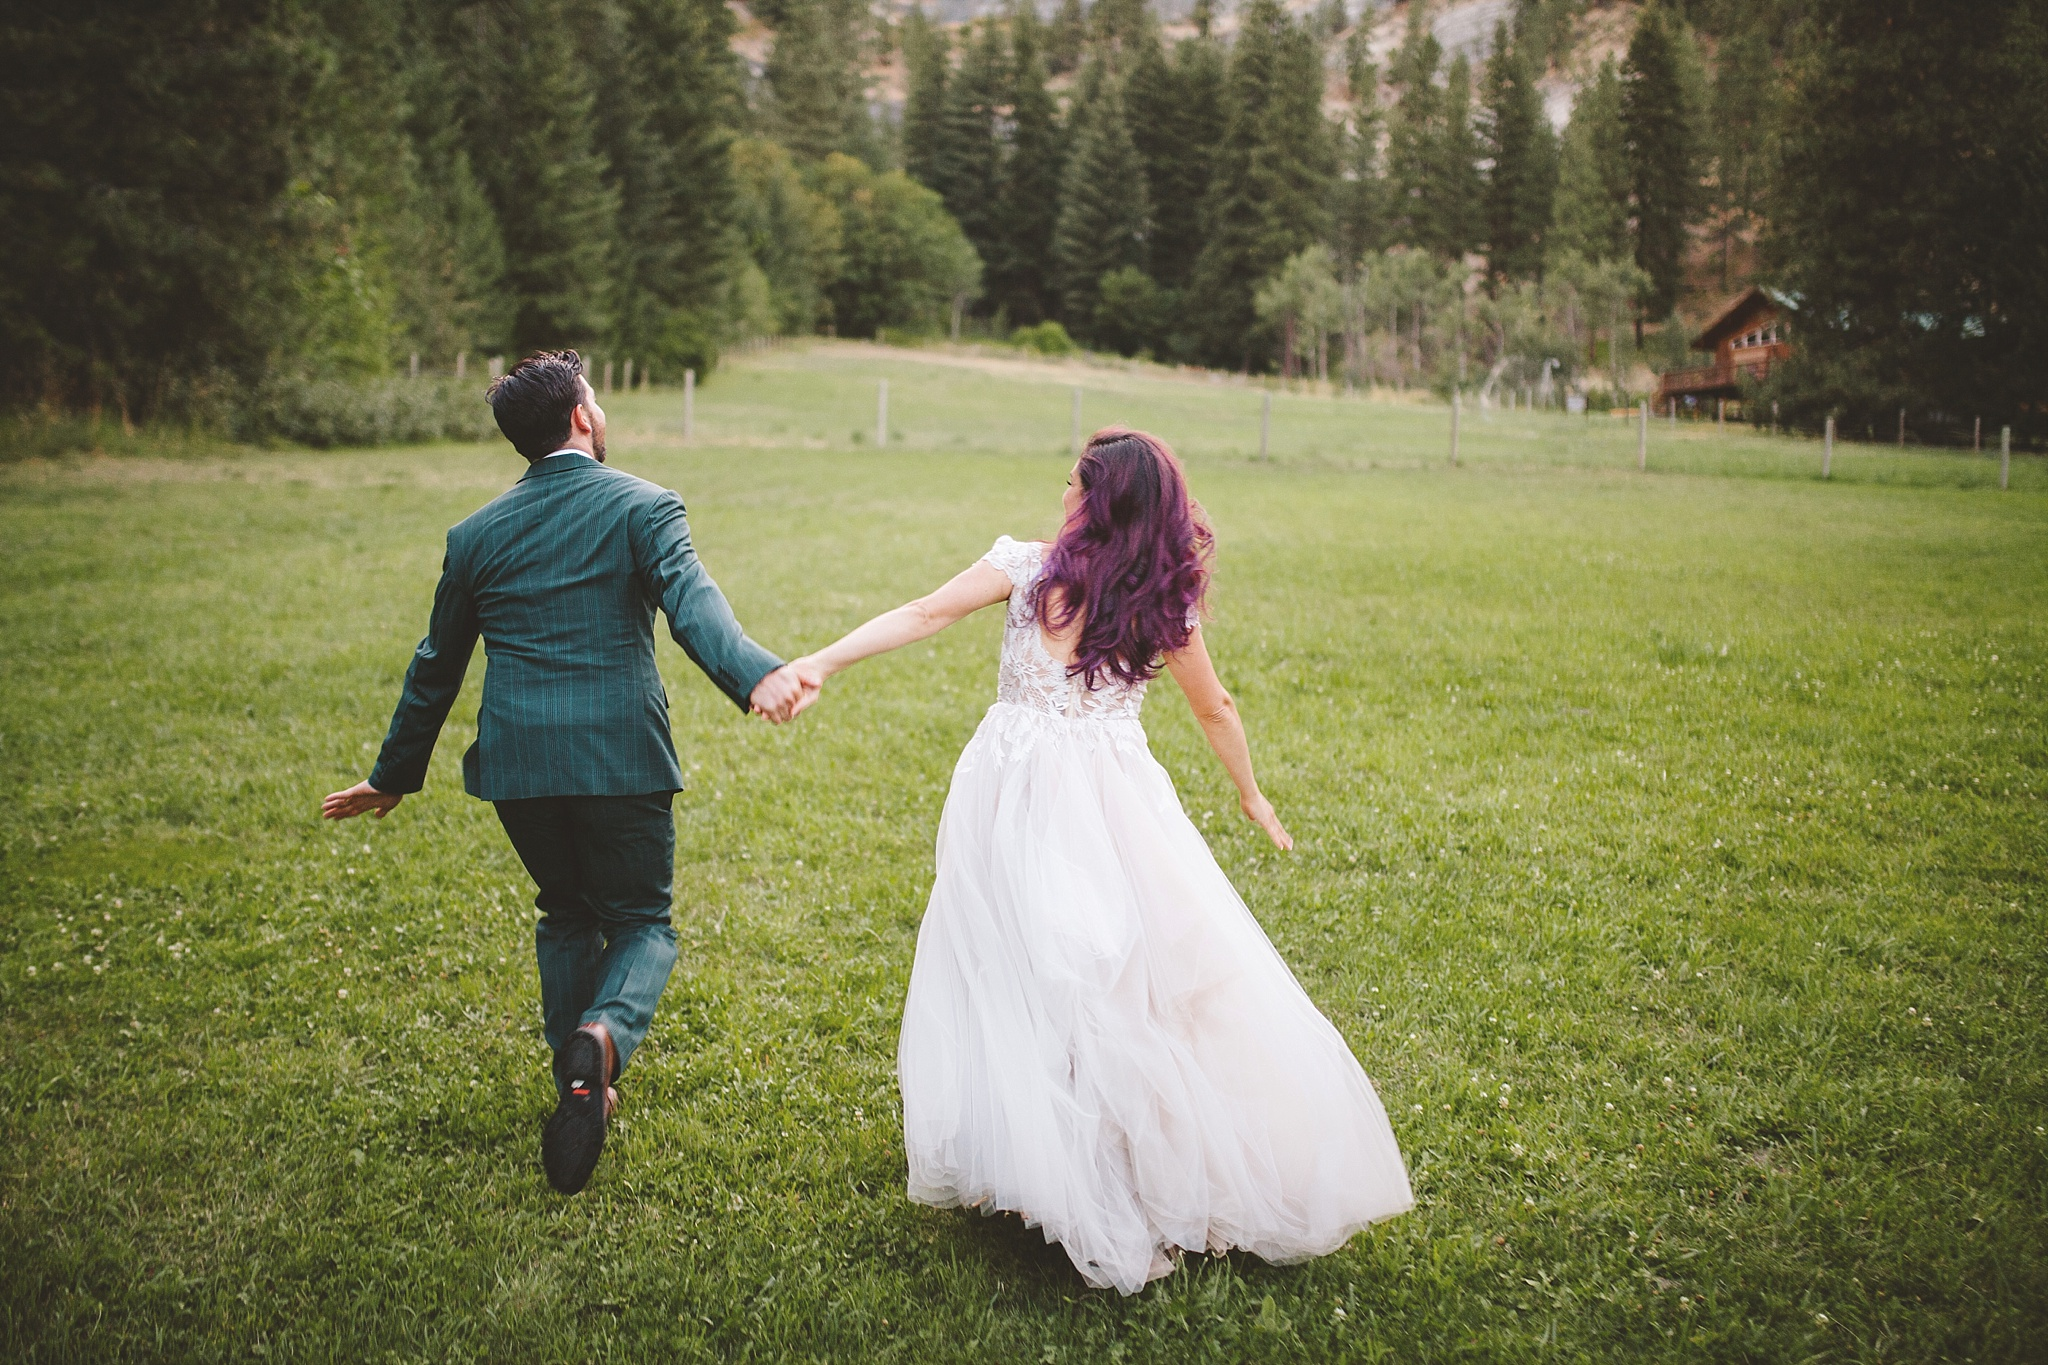 bride and groom skipping together